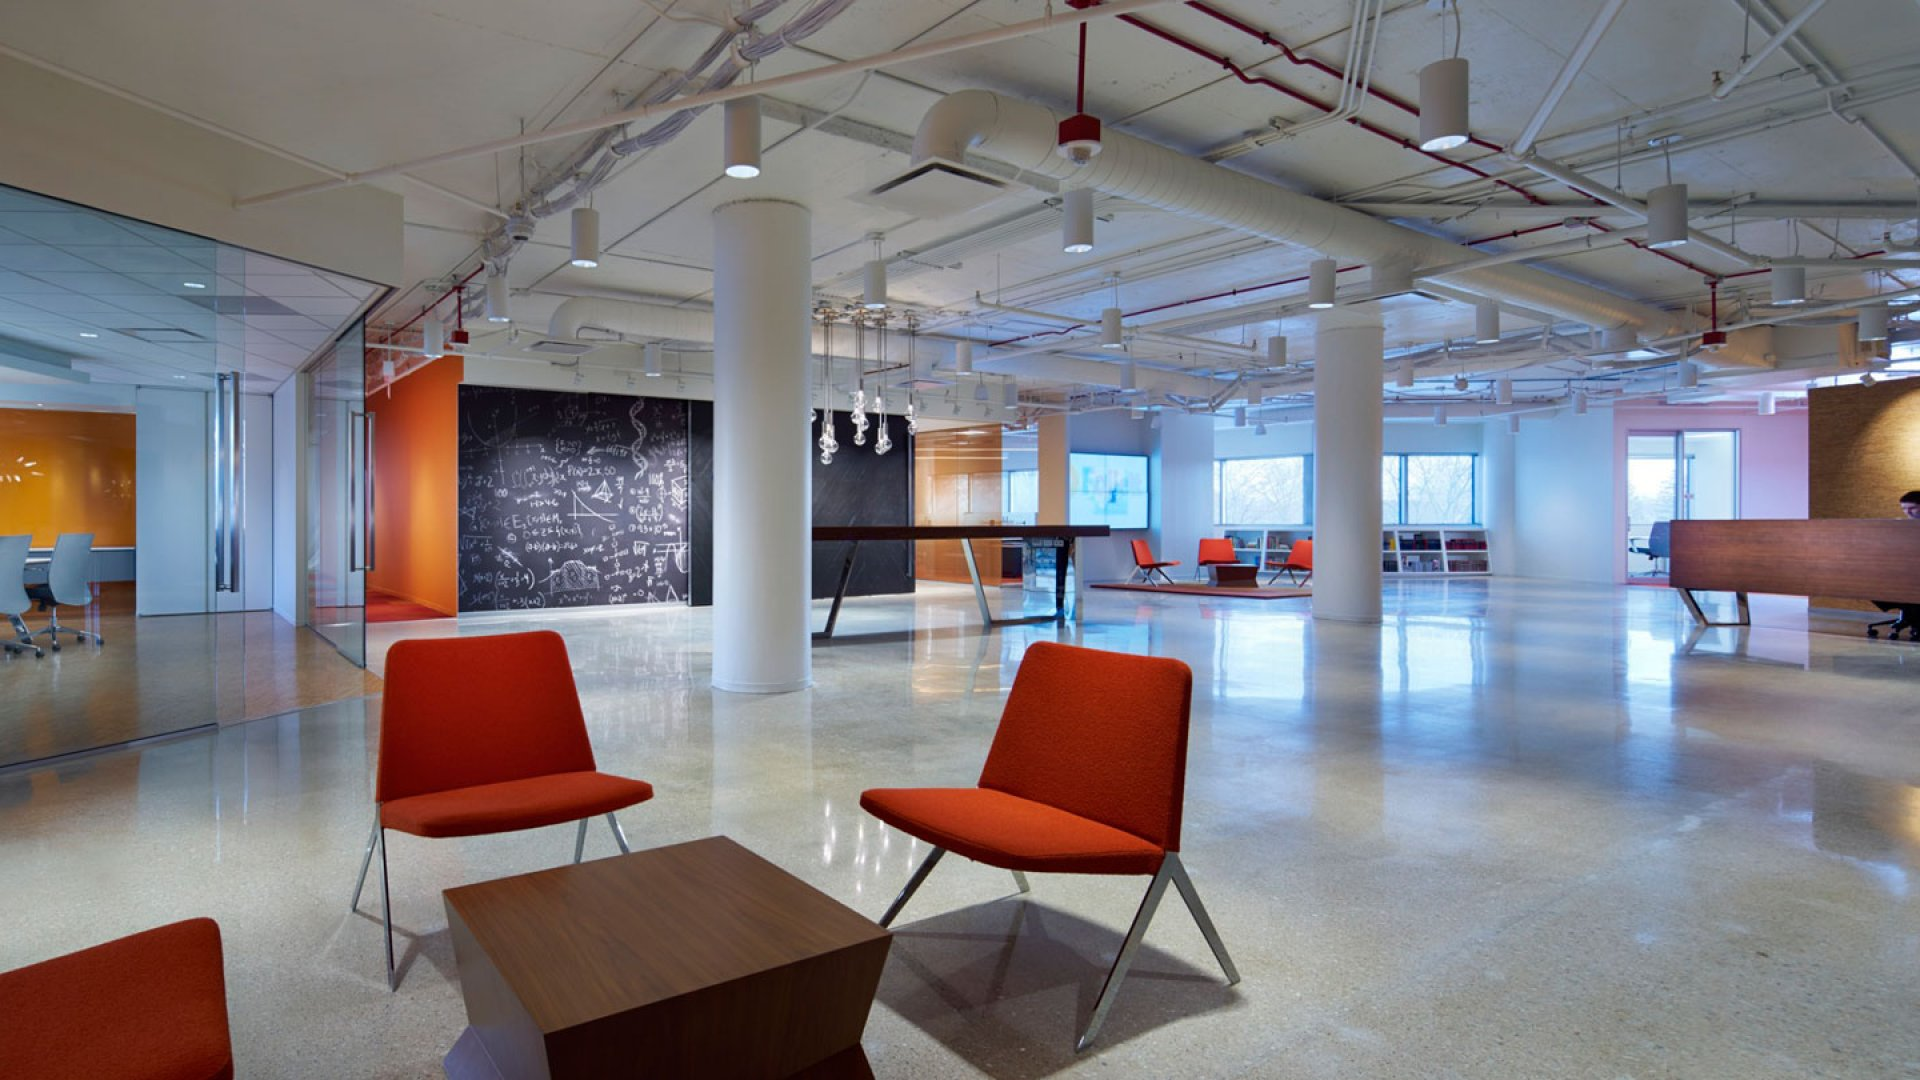 How to Design a Workplace for Wellbeing: 2 Critical Factors